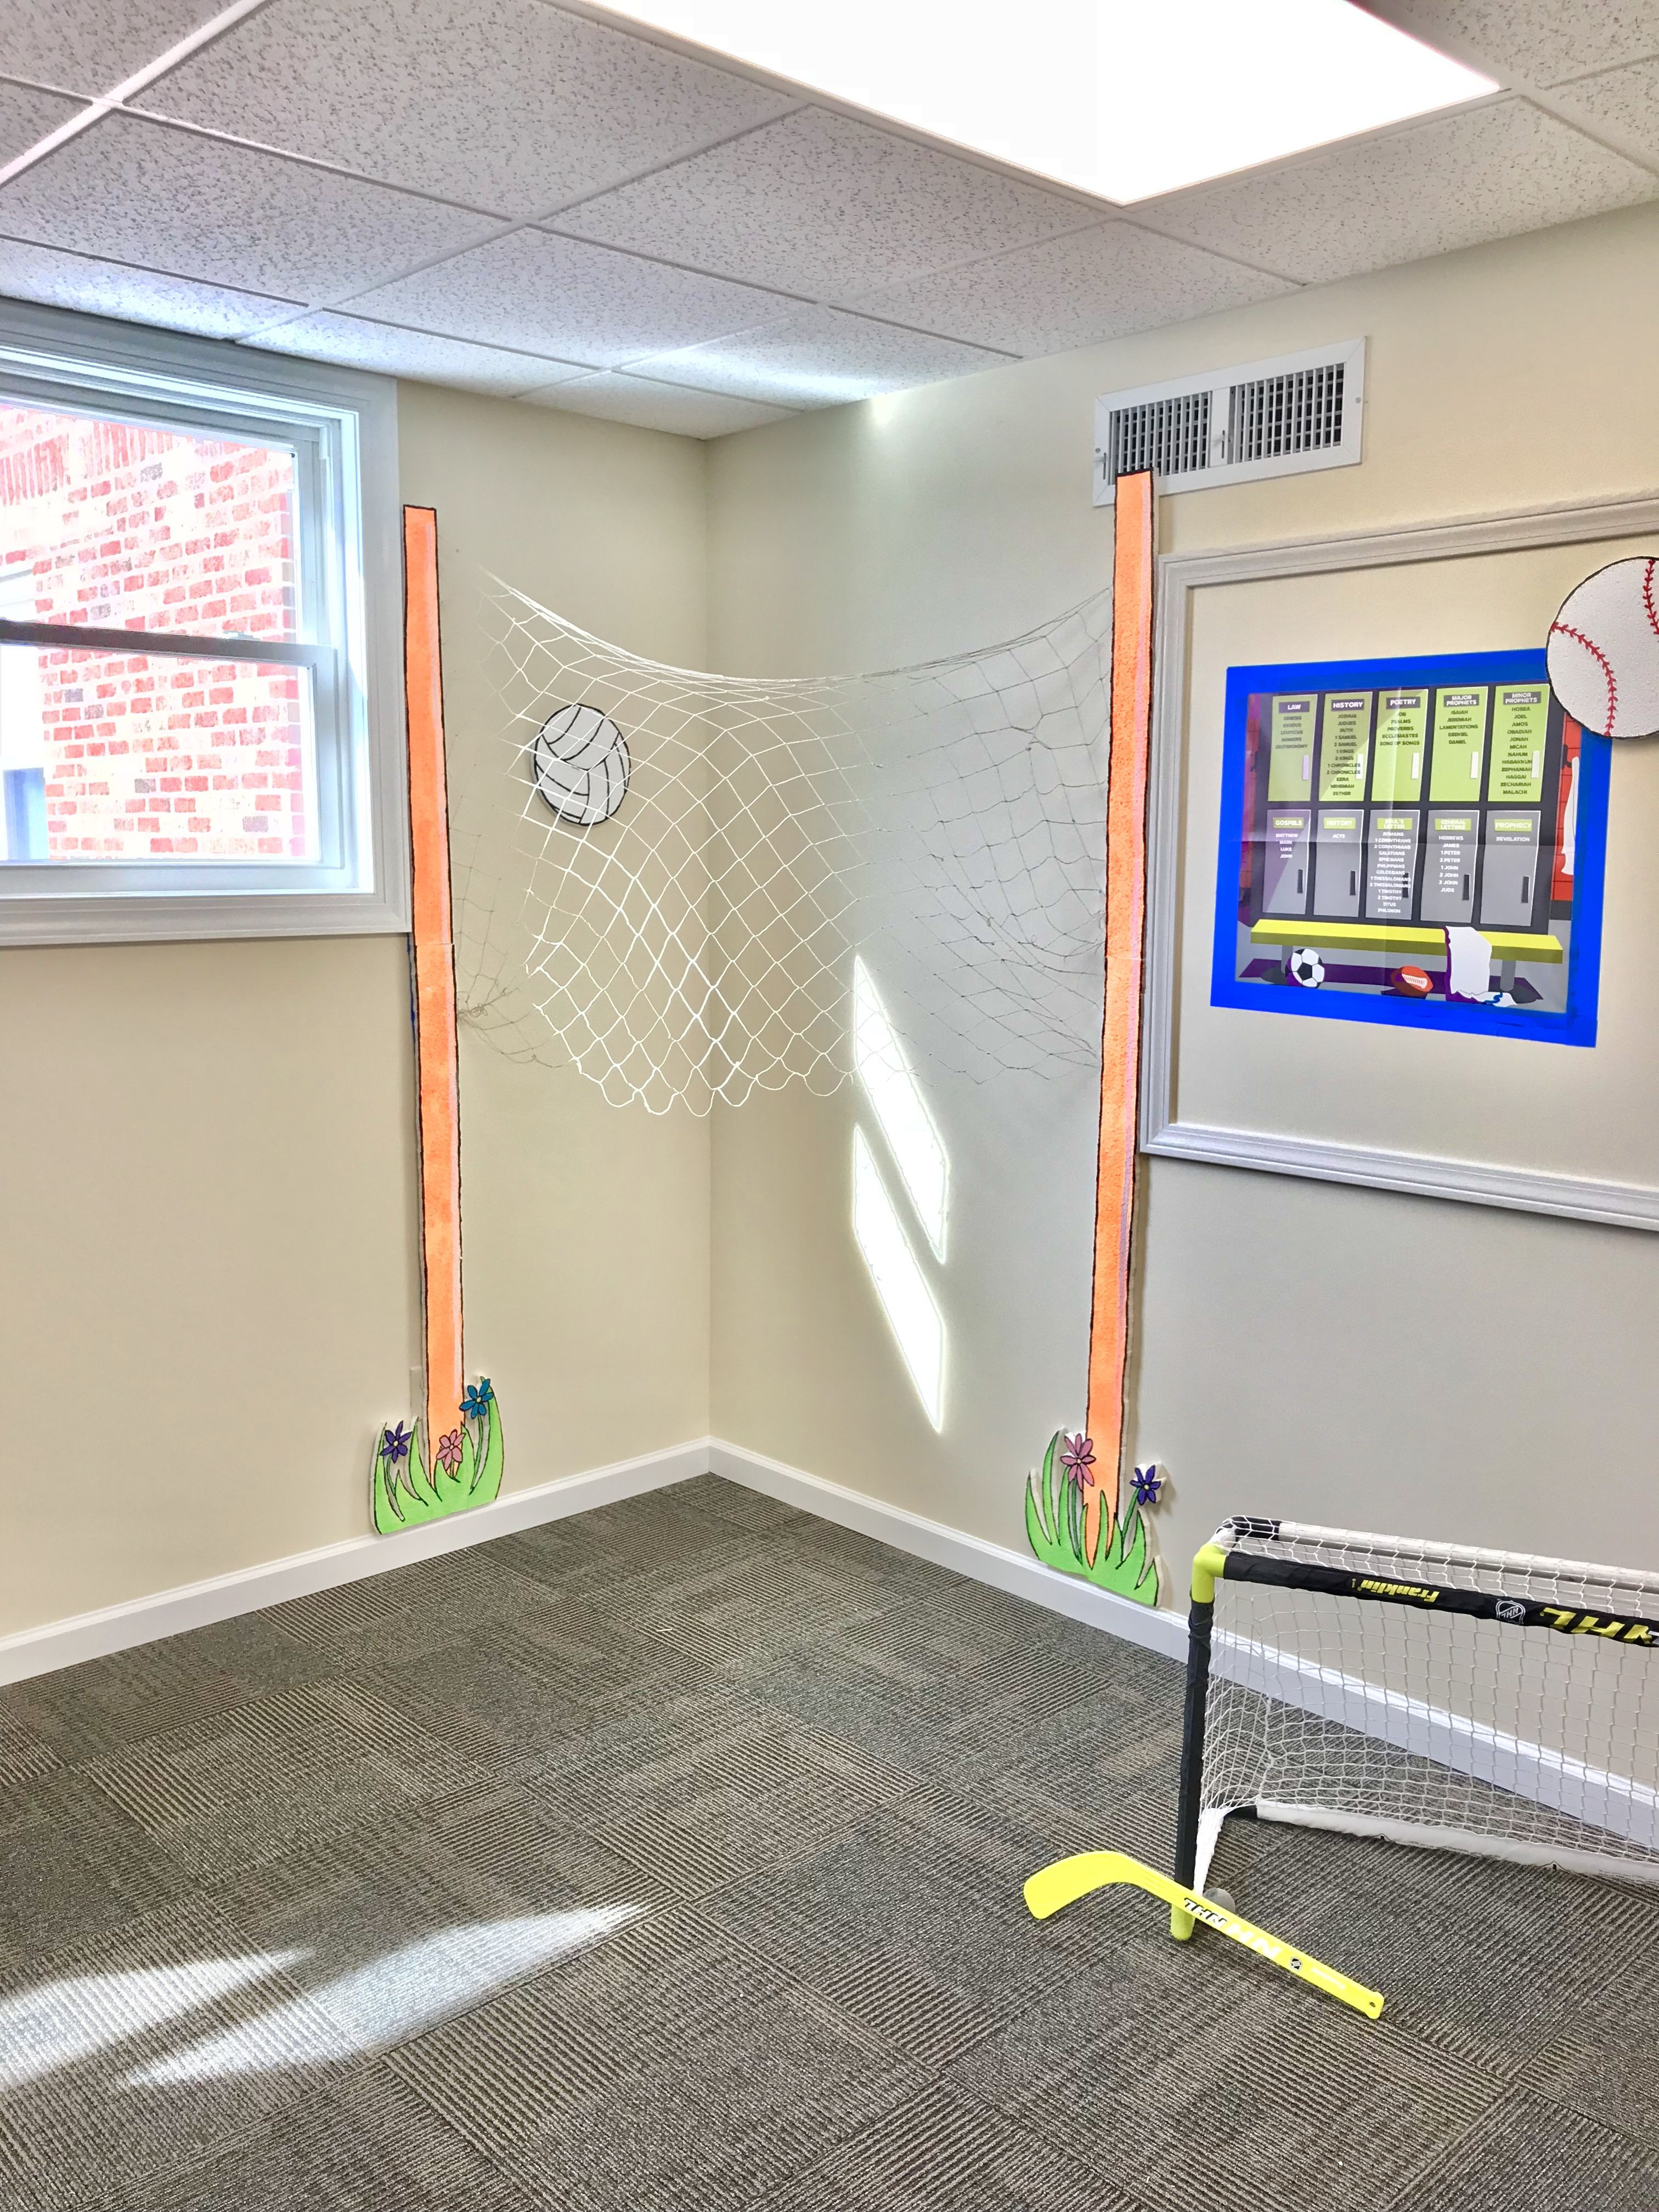 Vbs 2018 Lifeway Game On Decorations Volleyball Poles Made From Styrofoam Insulation Purchased From Lowe S Painte Vbs Crafts Vbs Themes Sports Decorations